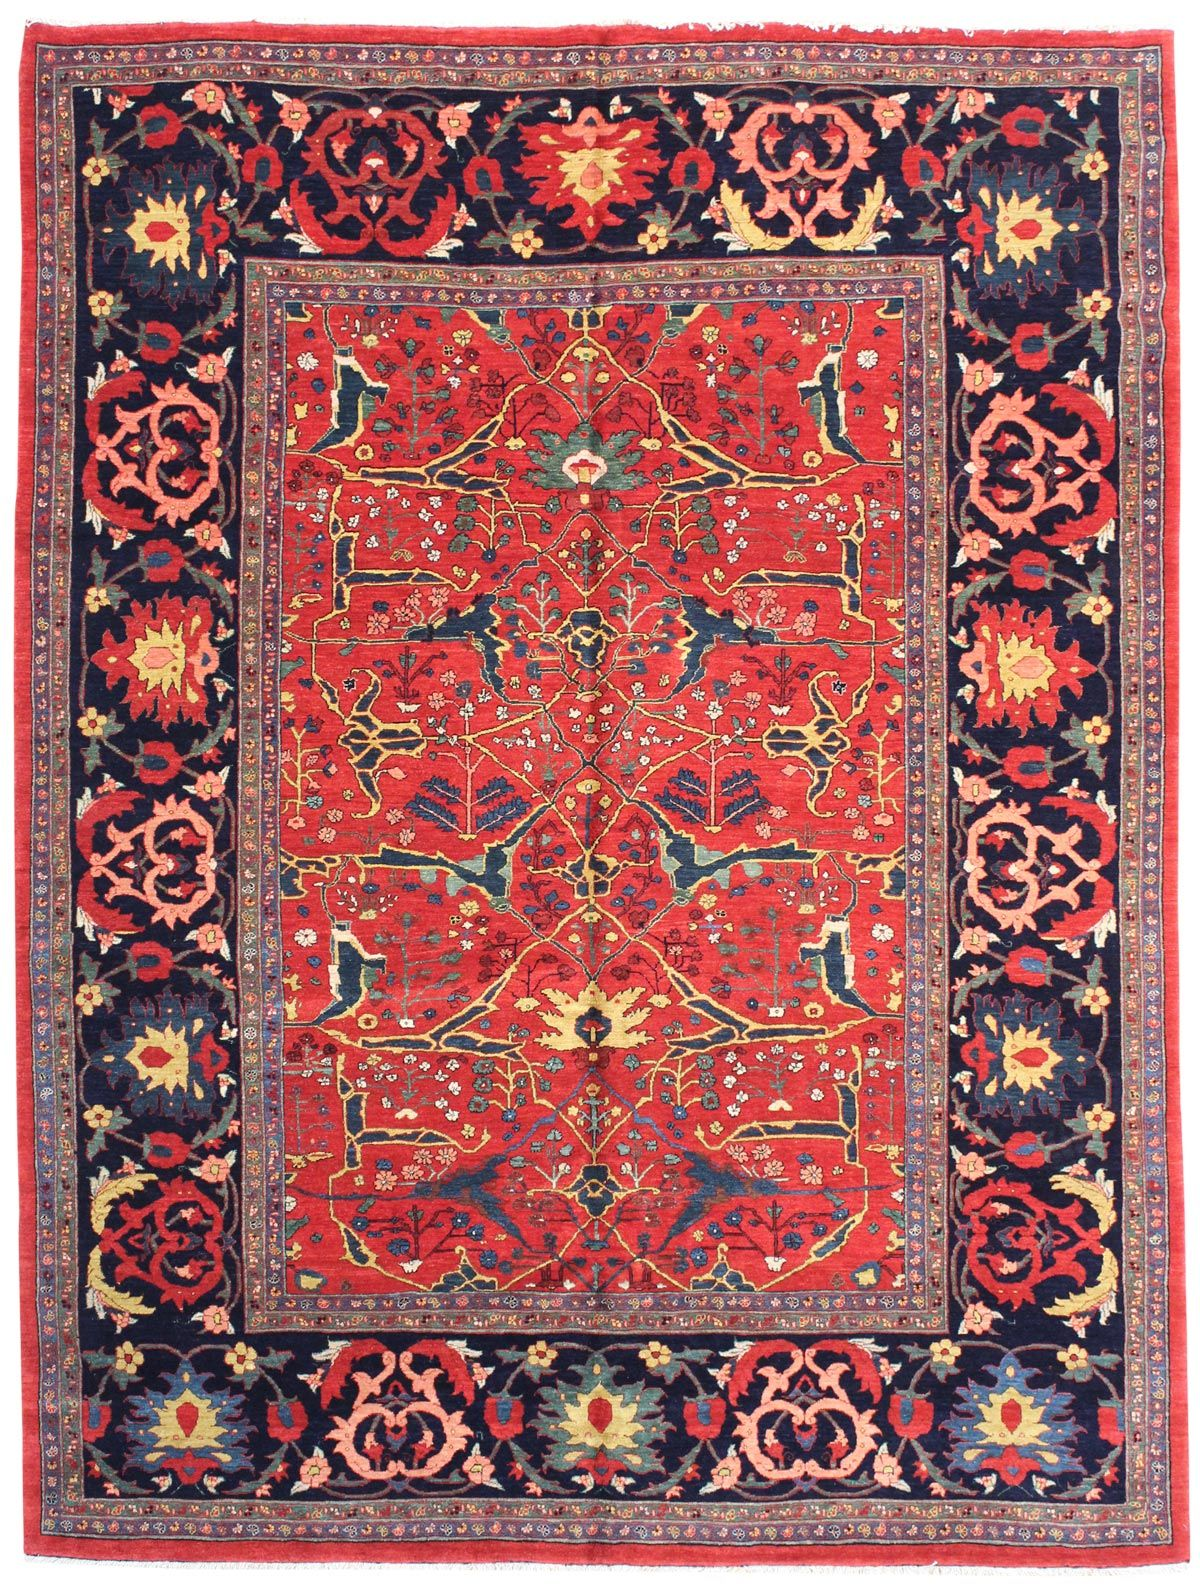 Geometric Oriental Rugs Gallery: Persian Bijar Rug, Hand Knotted In Persia;  Size